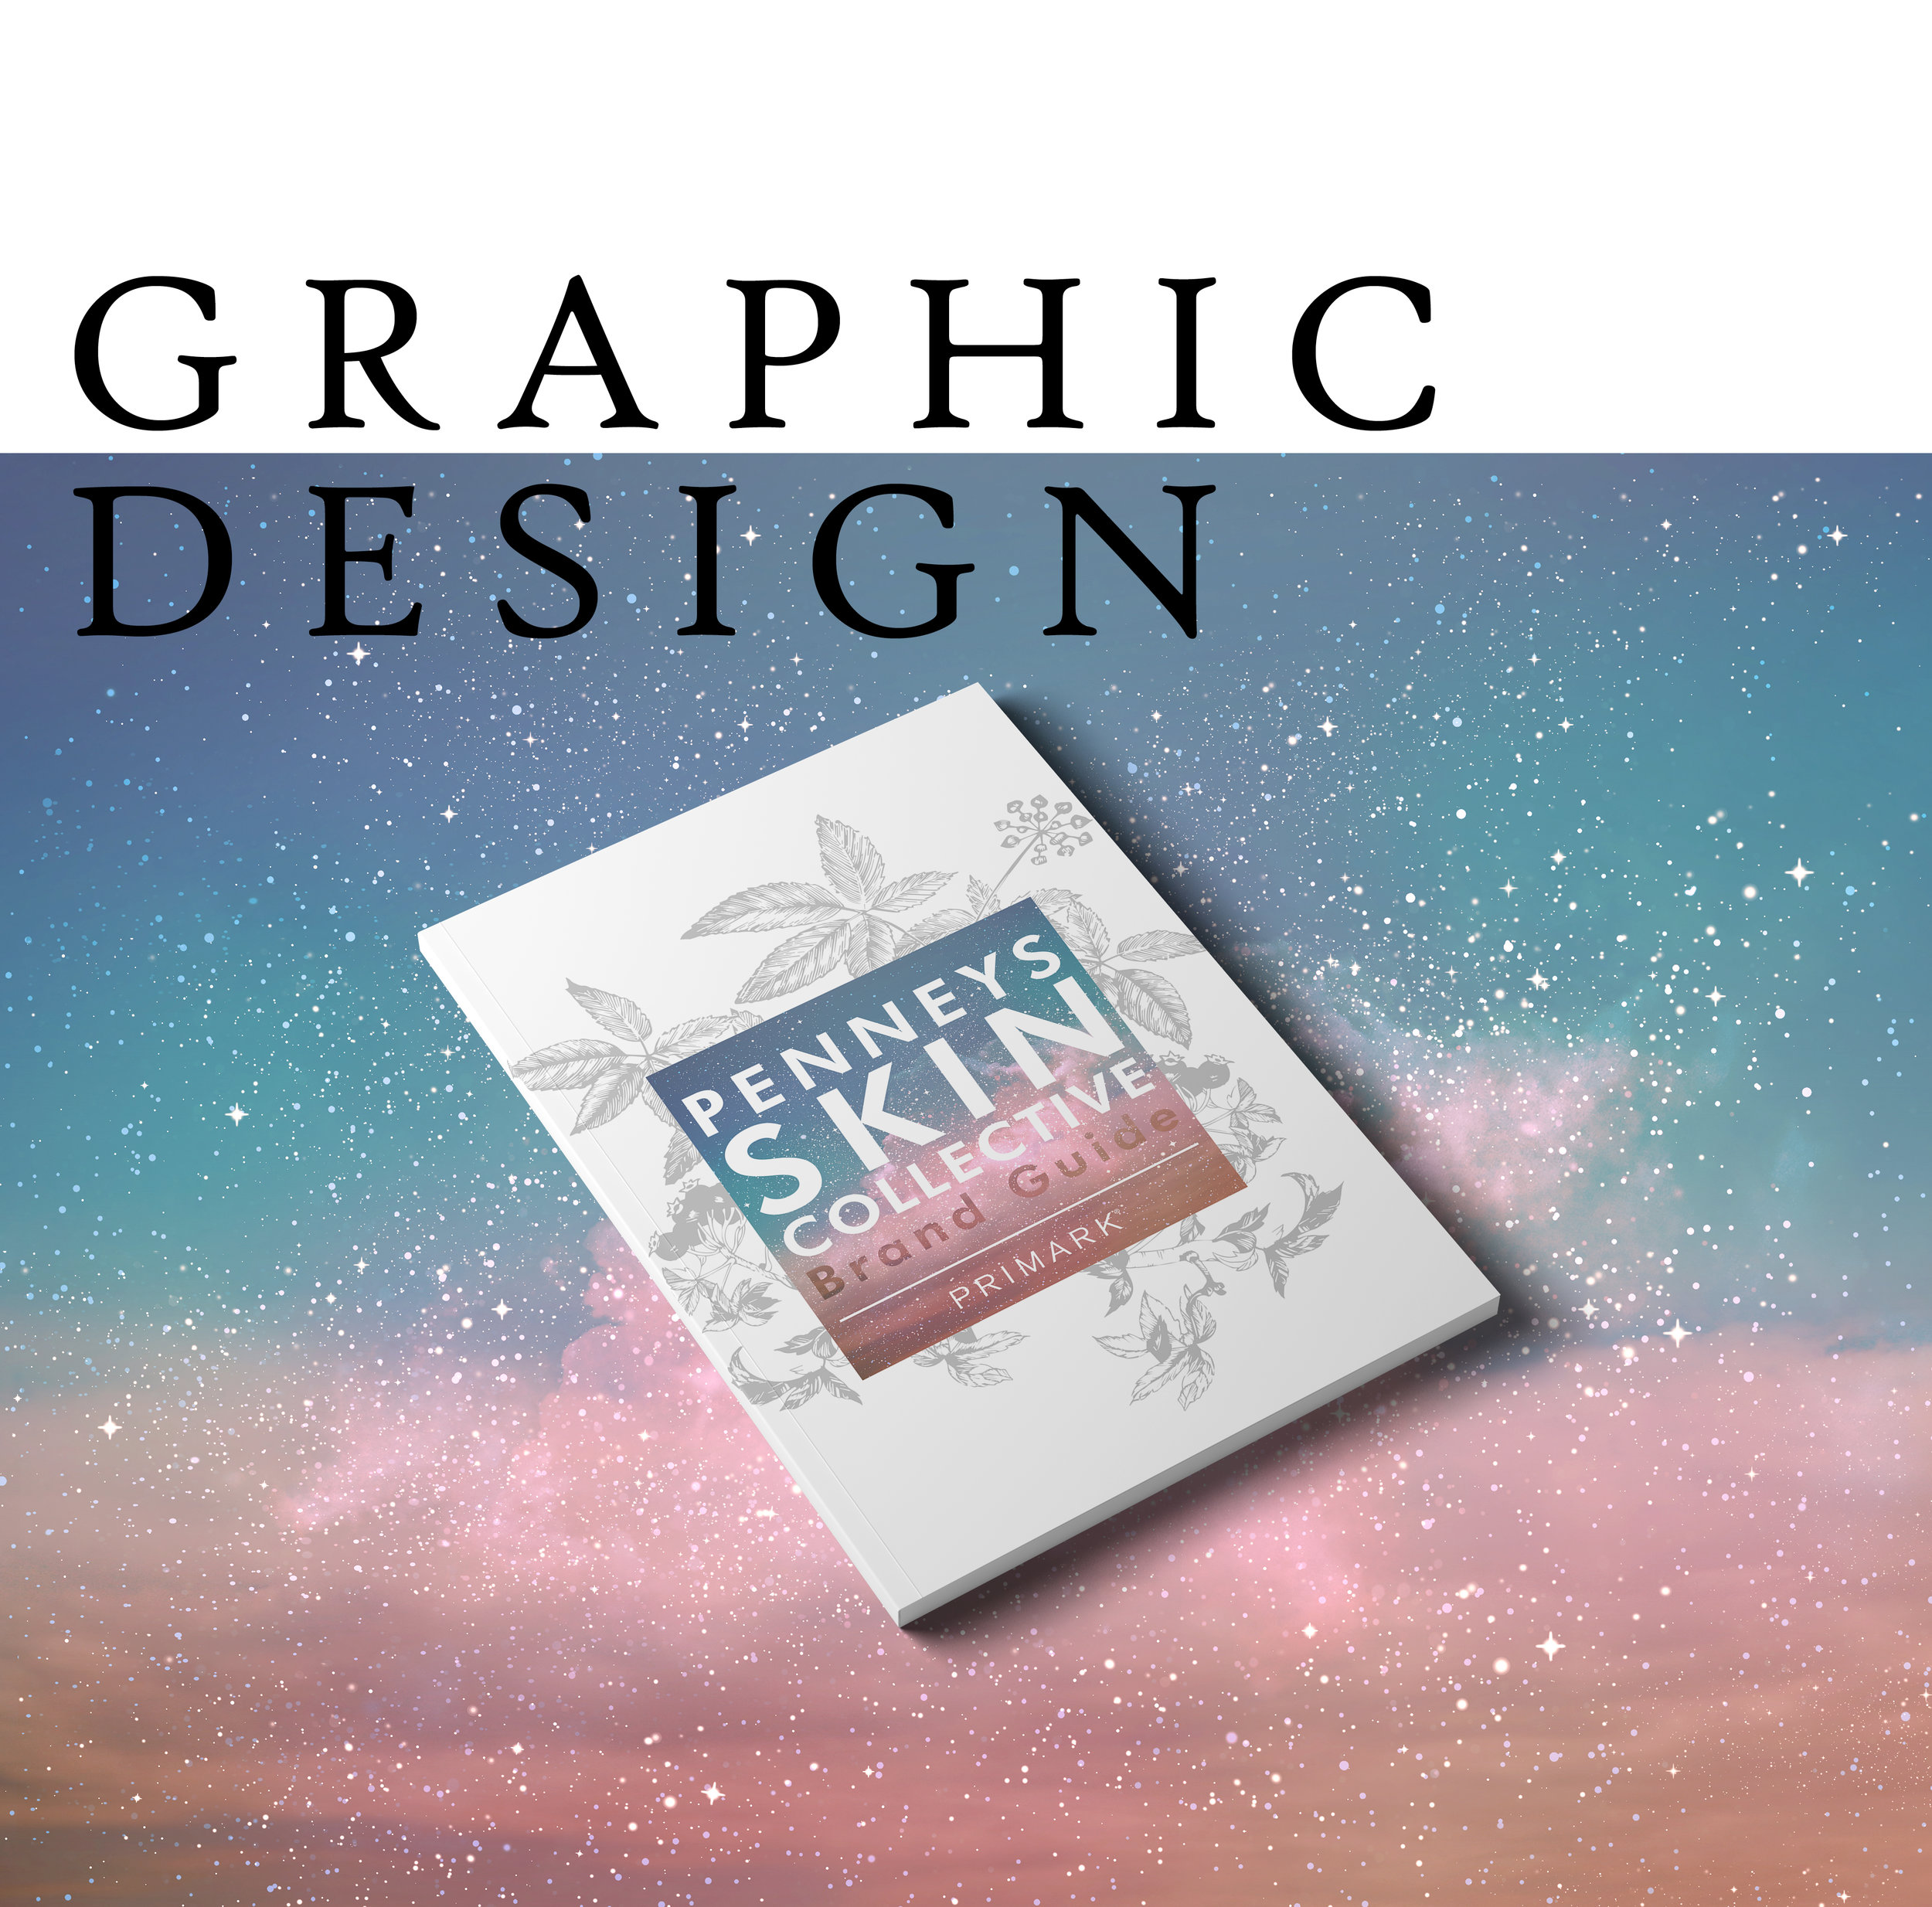 ONLINE & PRINT - INCLUDING BRAND IDENTITY & COLLATERAL